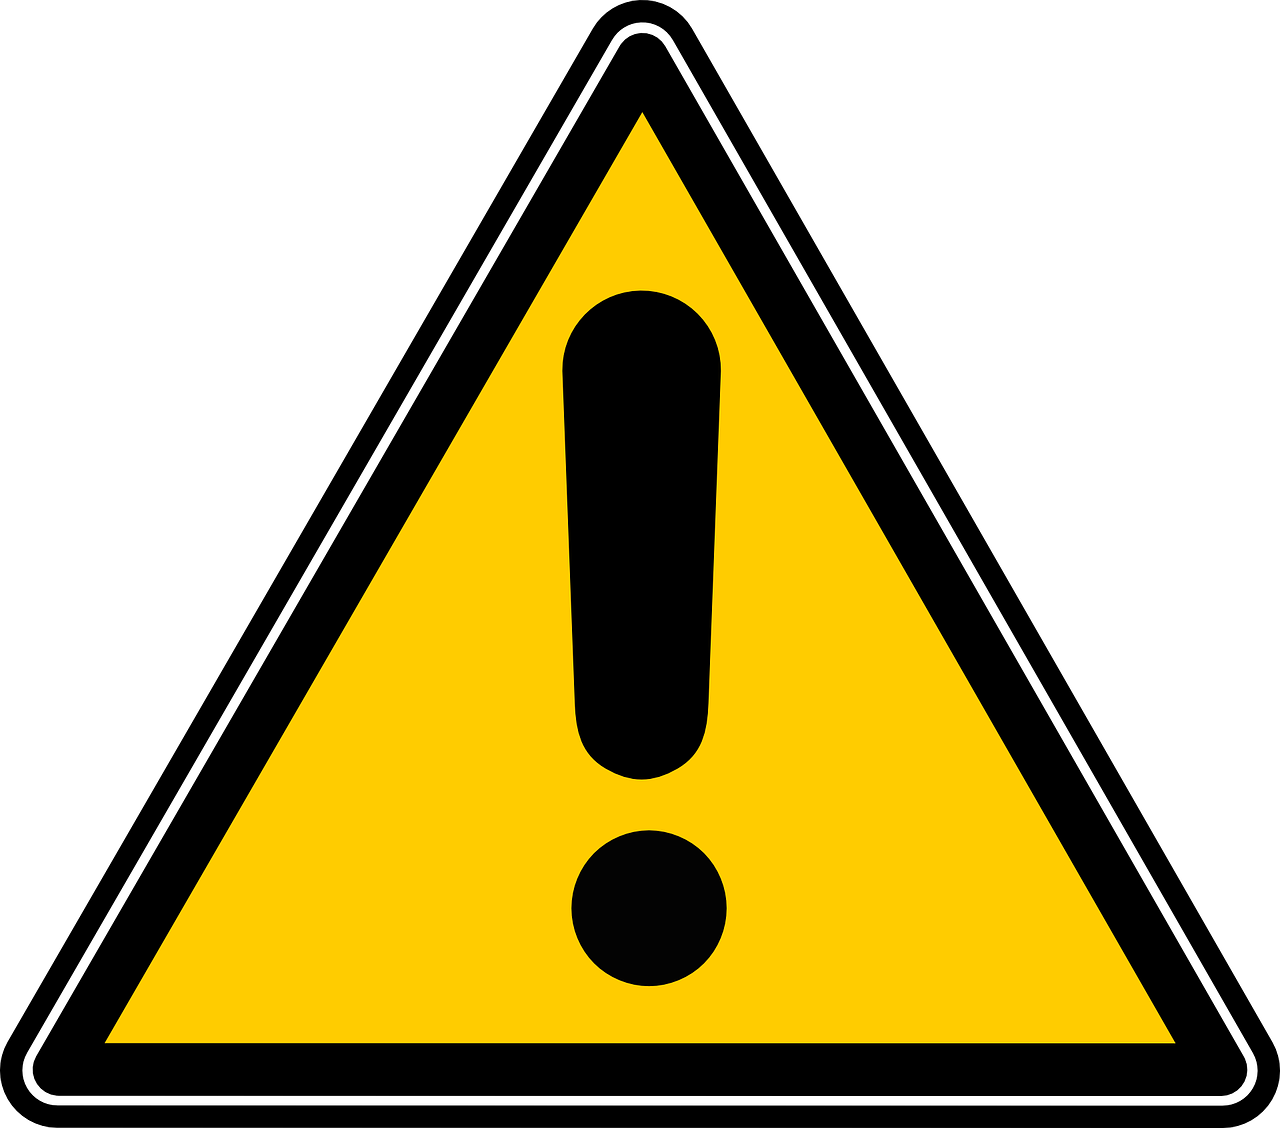 yellow triangle with black border and black exclamation point in the middle